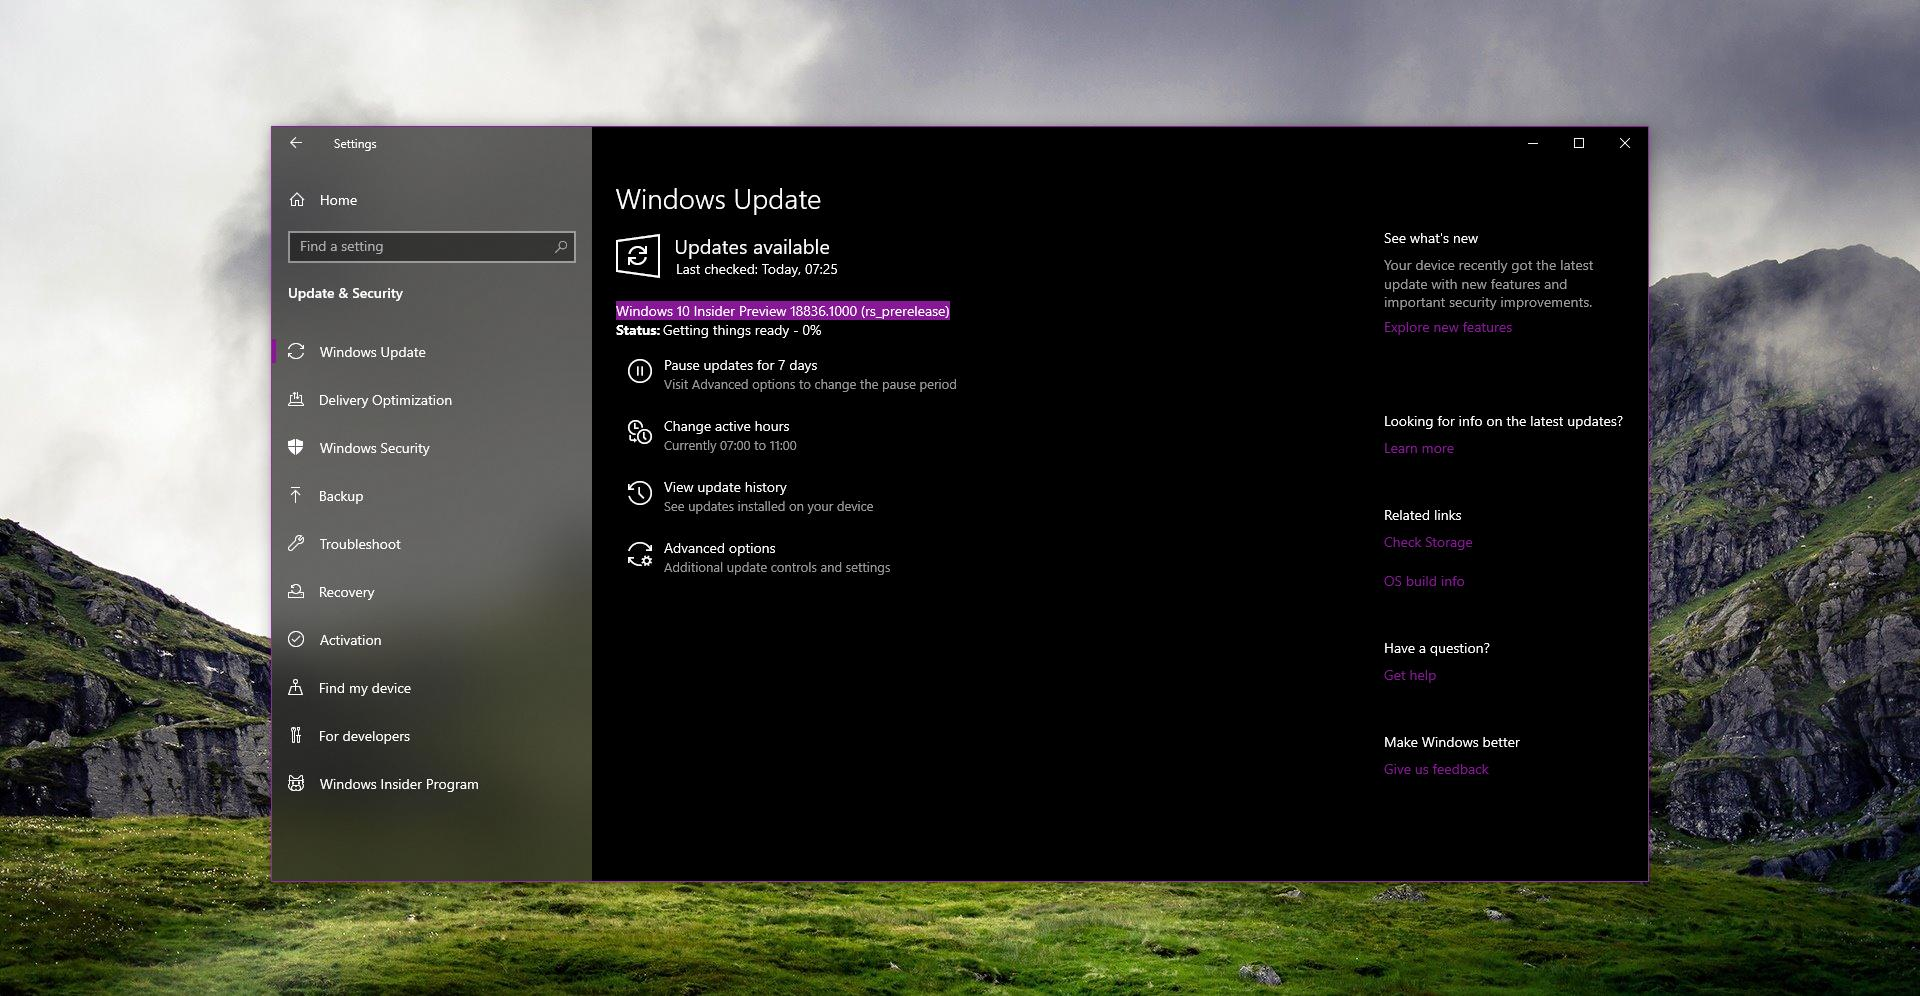 New Windows Update 2020 Microsoft Releases the First Preview of April 2020 Windows 10